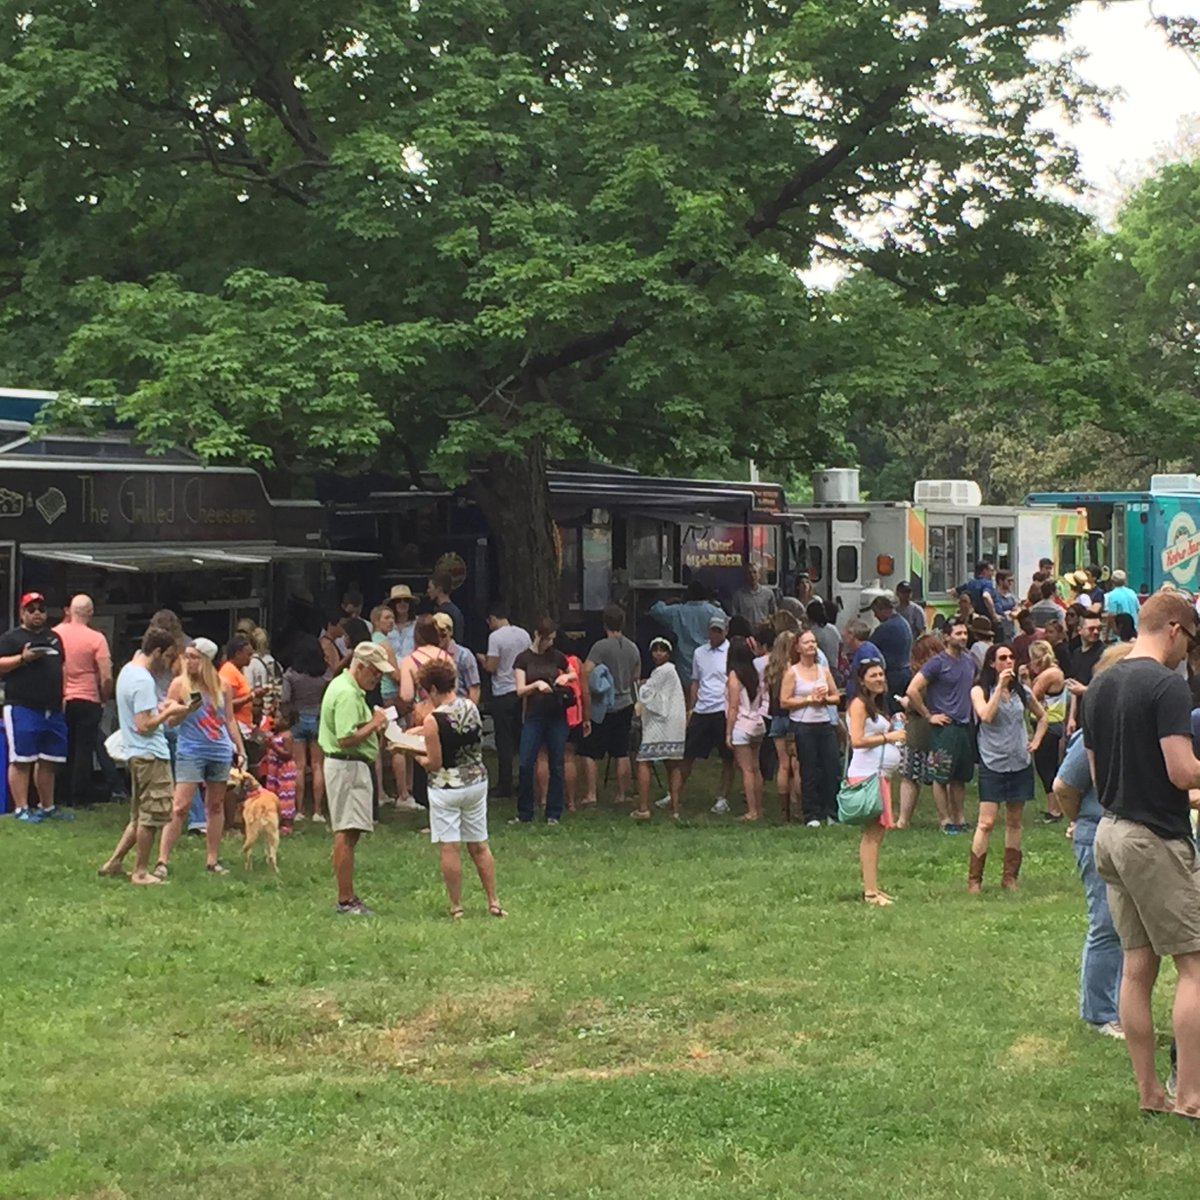 Great article today from @scavendish in the @NashvilleScene about how food trucks in Nashville http://t.co/2DT6452bTe http://t.co/ouq8p4QQZ4